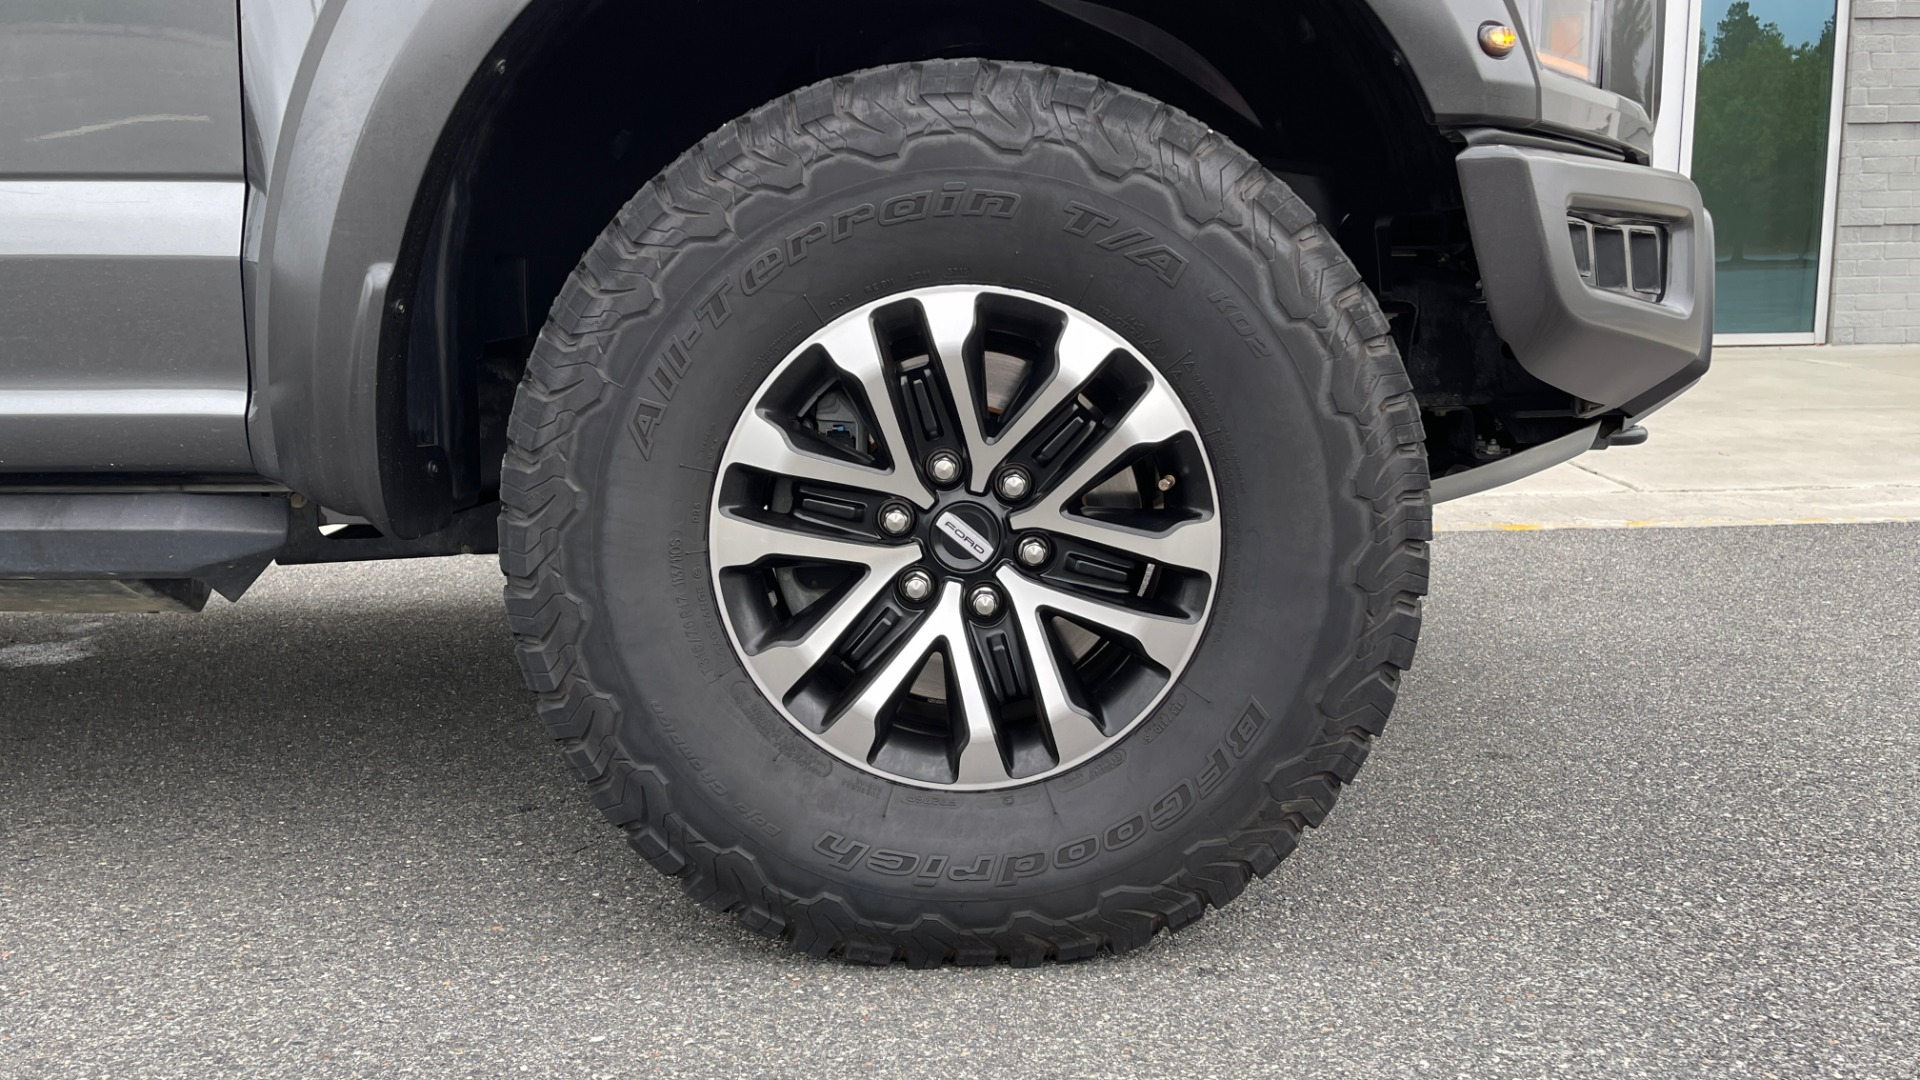 Used 2020 Ford F-150 RAPTOR 4X4 SUPERCREW / NAV / B&O SOUND / SUNROOF / REARVIEW for sale $74,900 at Formula Imports in Charlotte NC 28227 75